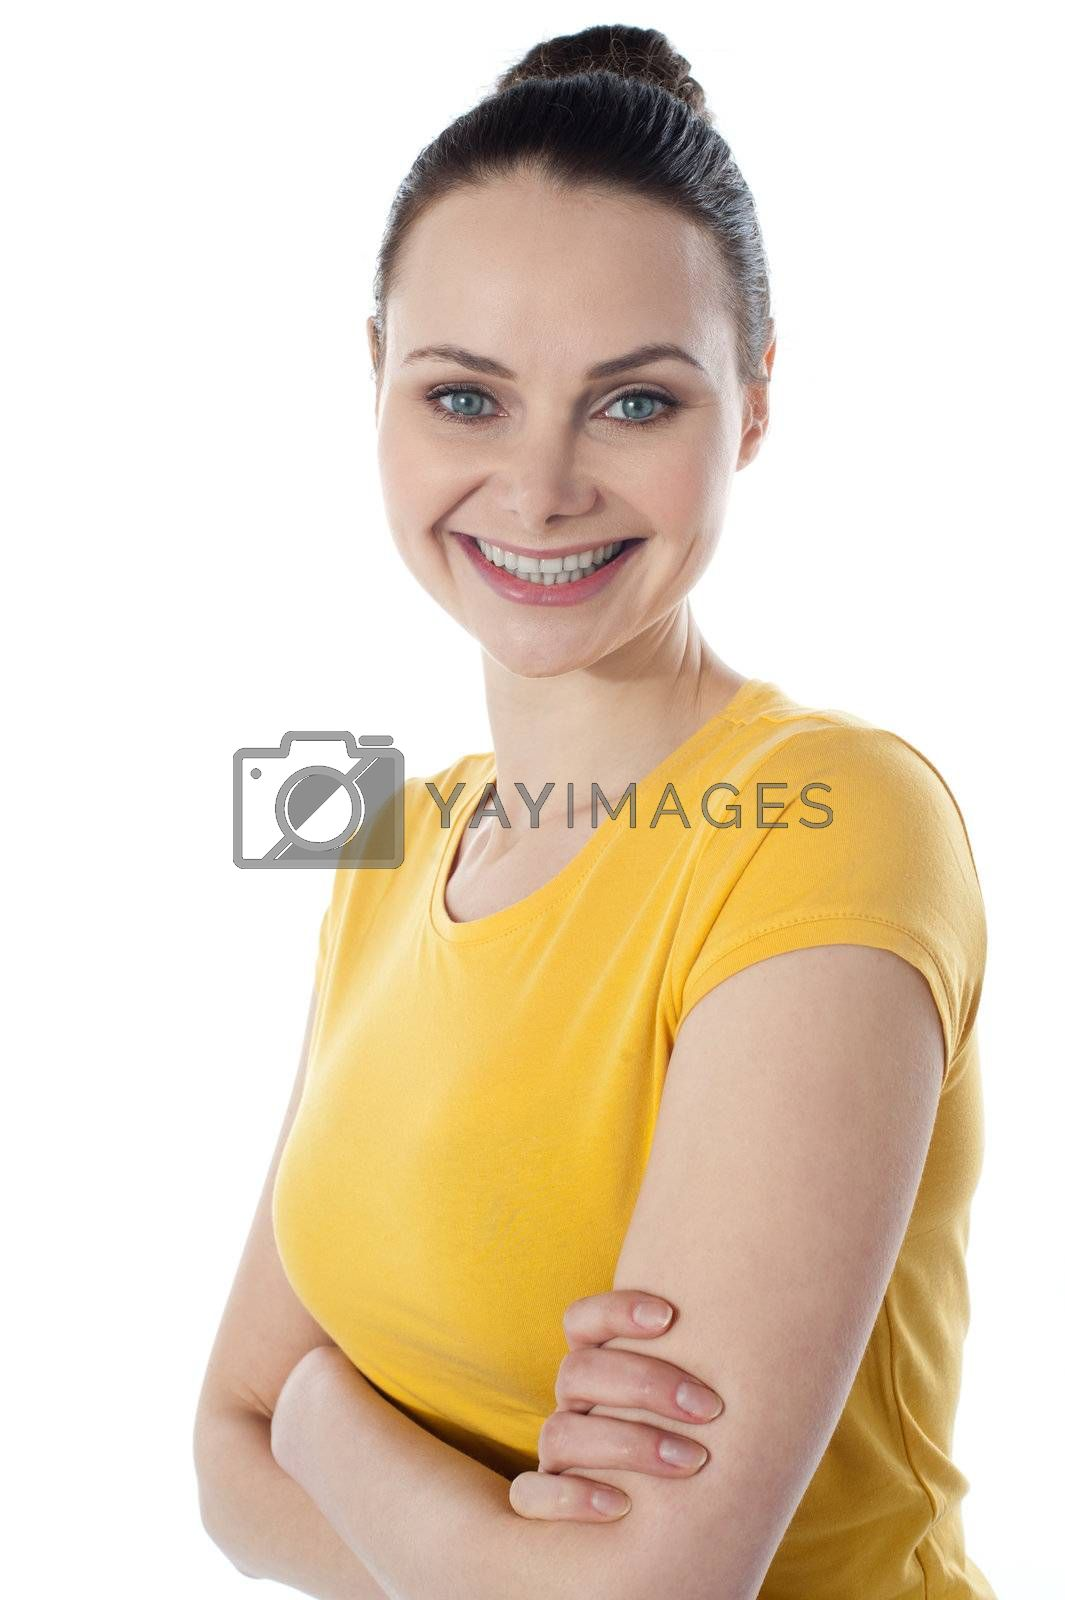 Skinny amarican teenager posing with folded arms isolated on white